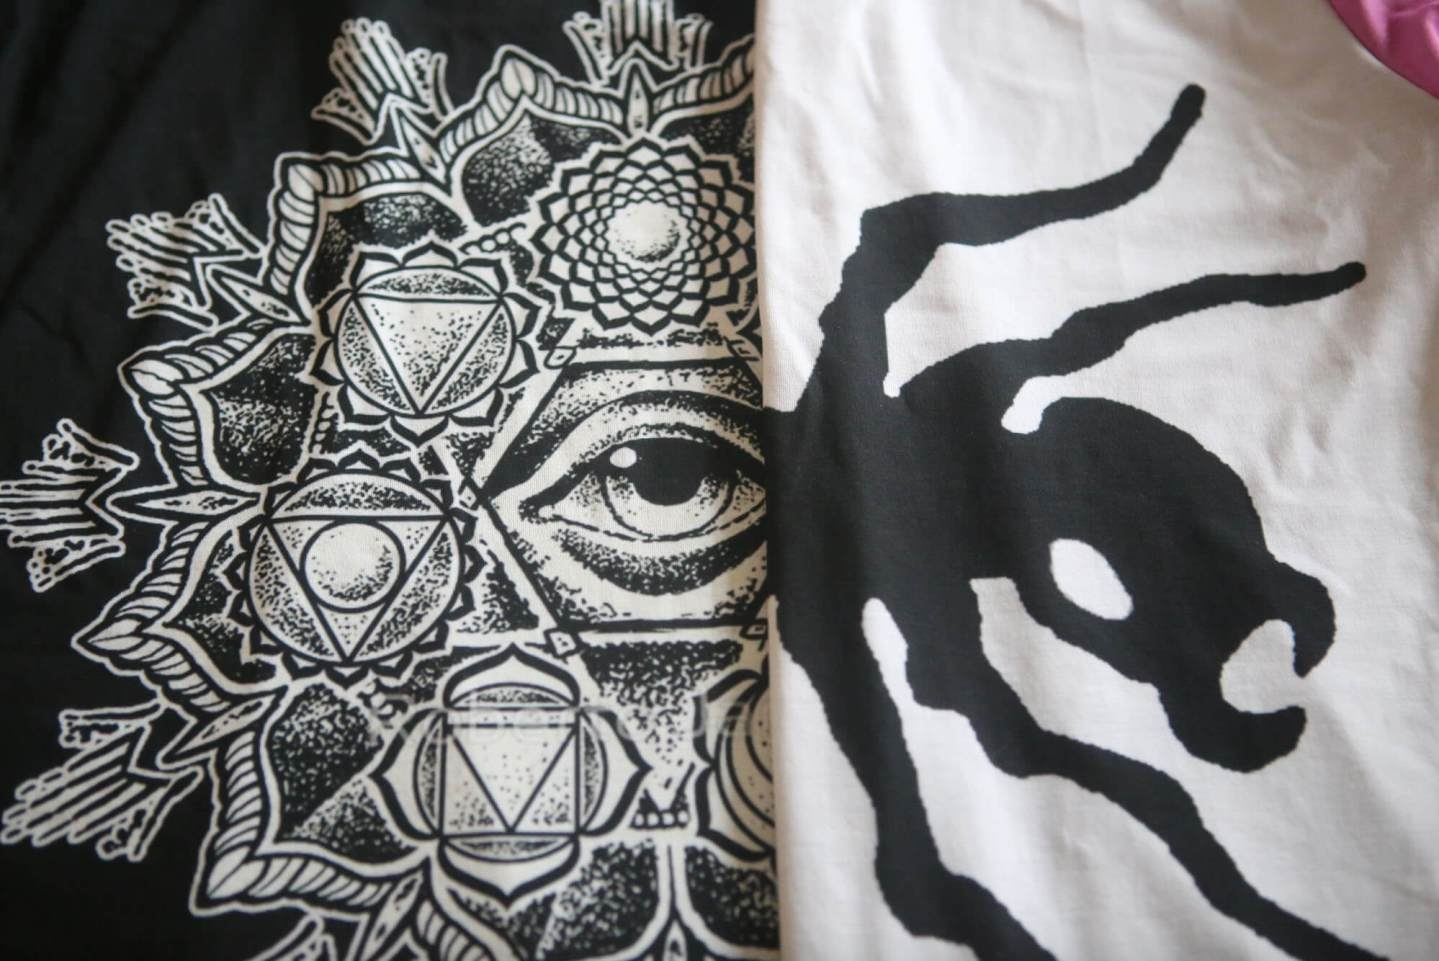 Can't Find The Exact T-Shirt You Want? Why Not Design It Yourself